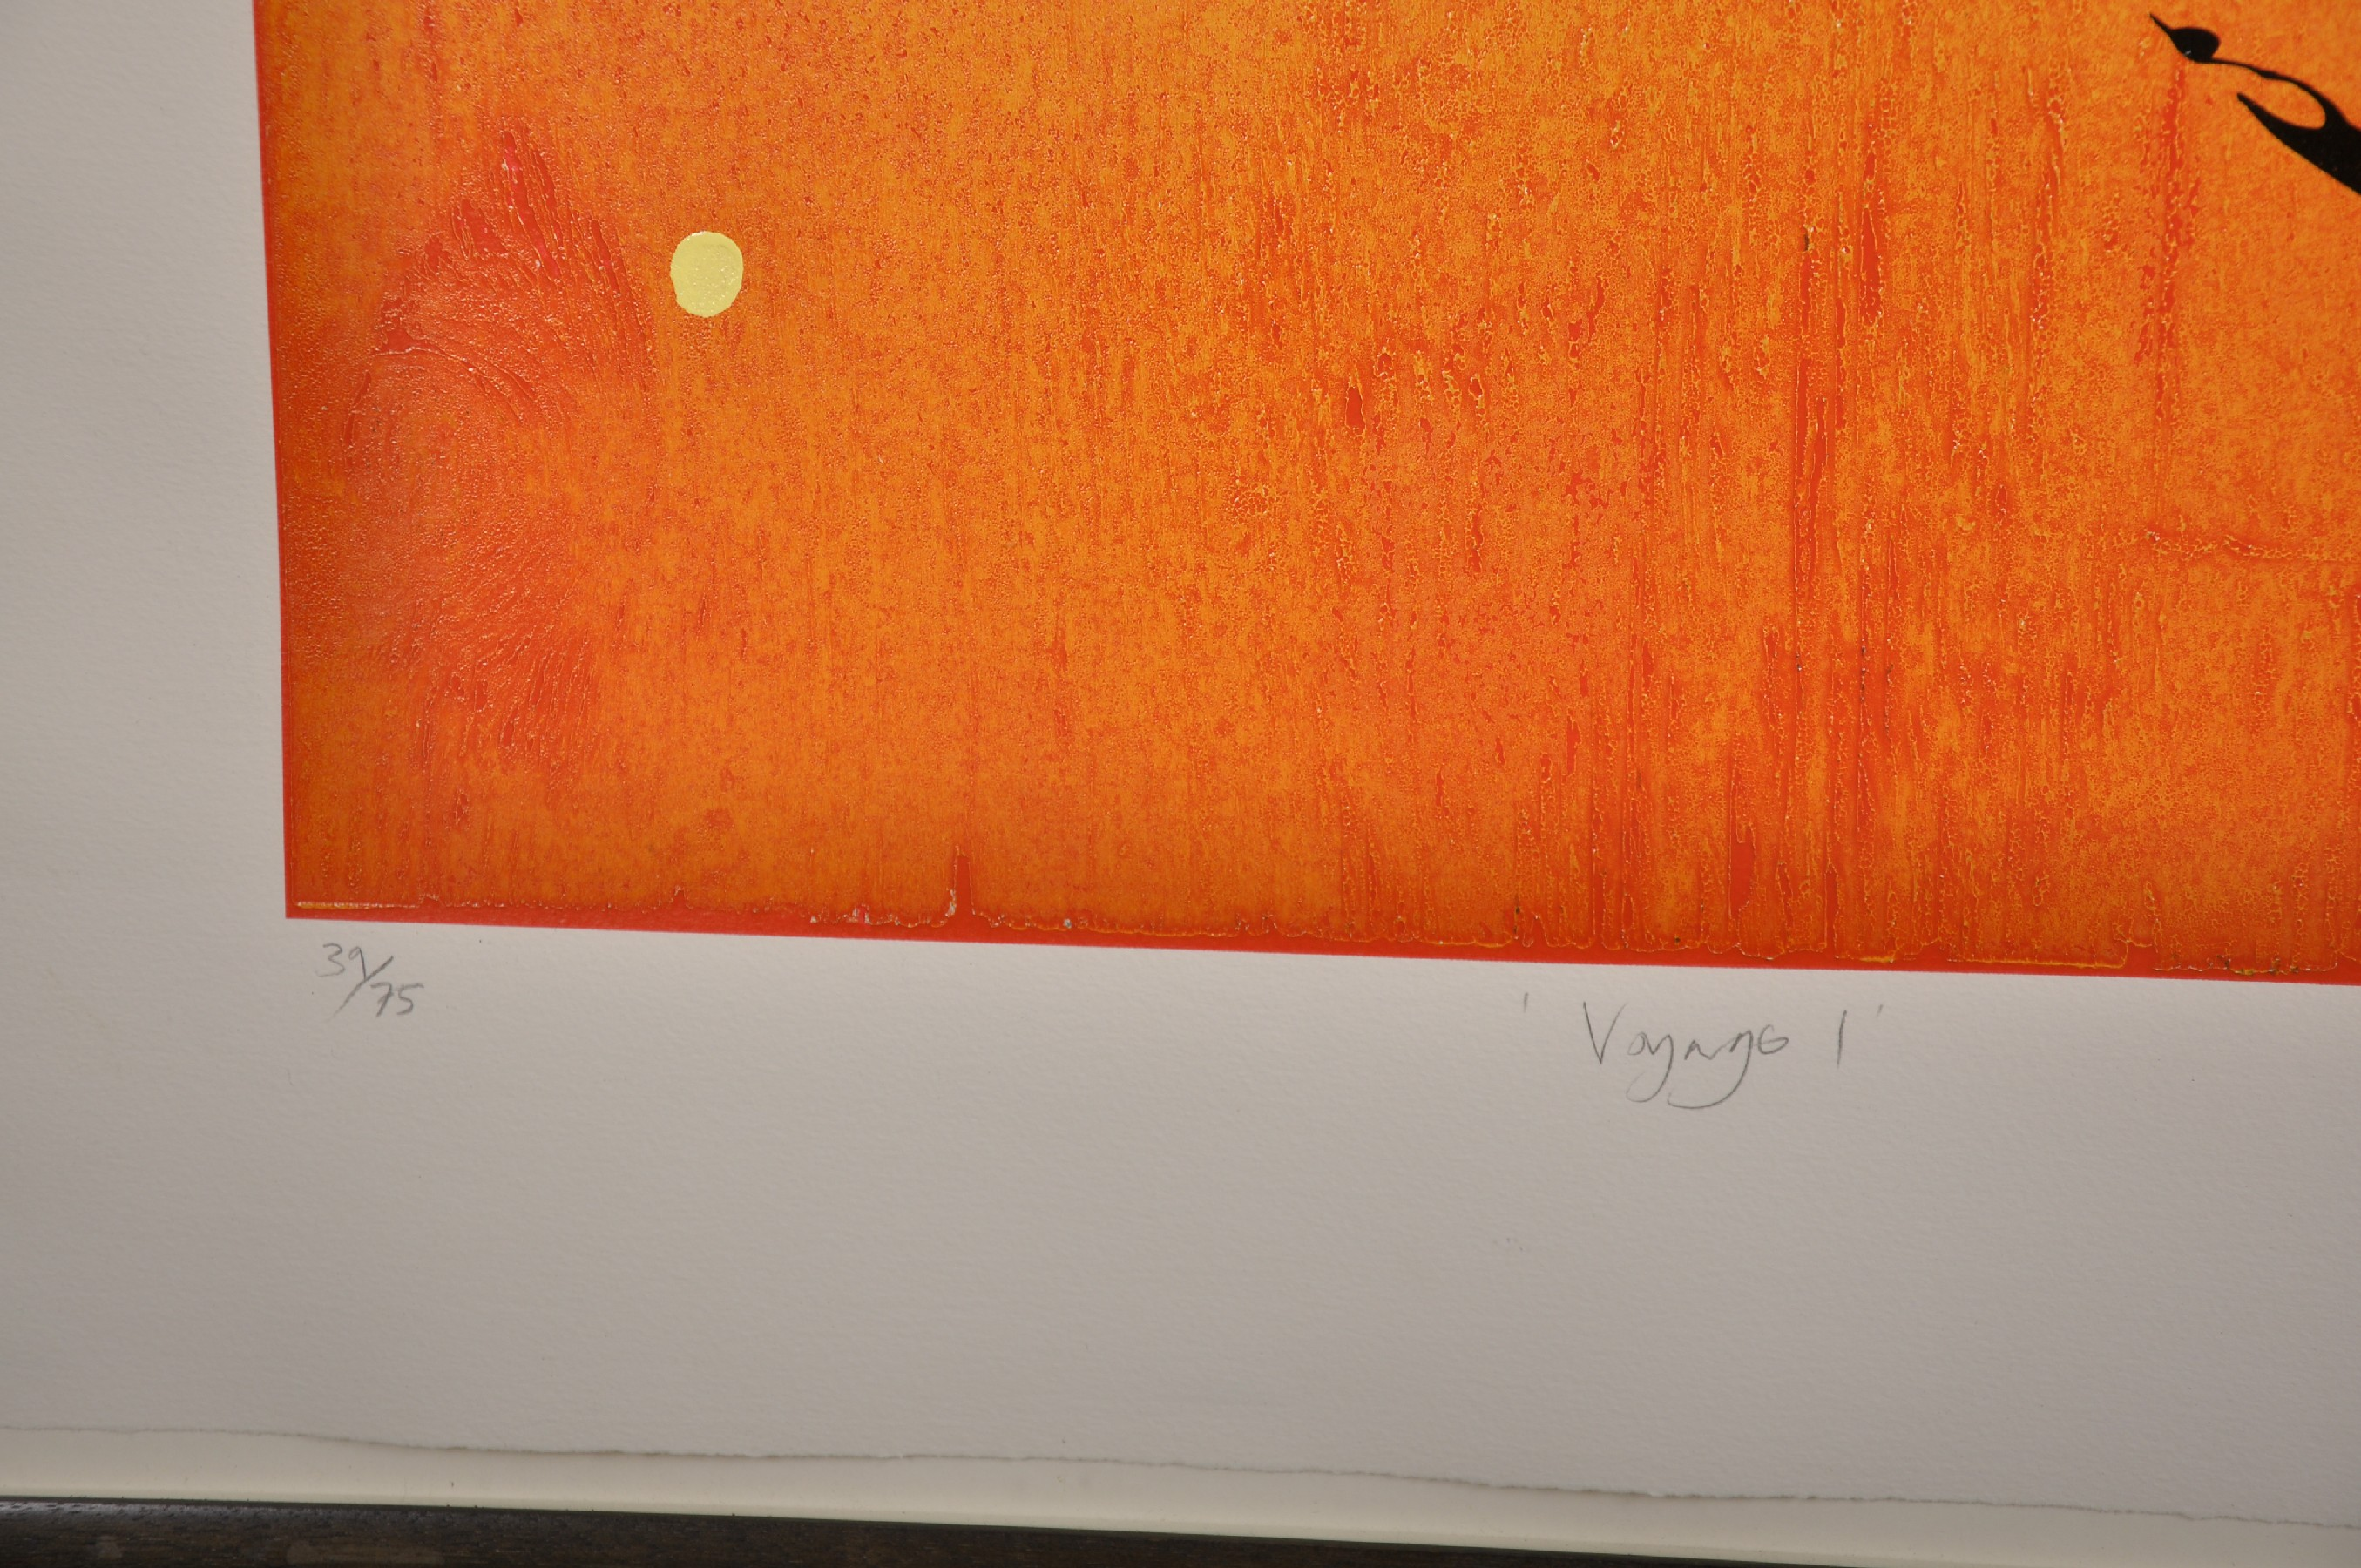 """Neil Canning (1960- ) British. """"Voyage I"""", Screenprint, Signed, Inscribed, Dated '00, and Numbered - Image 3 of 5"""